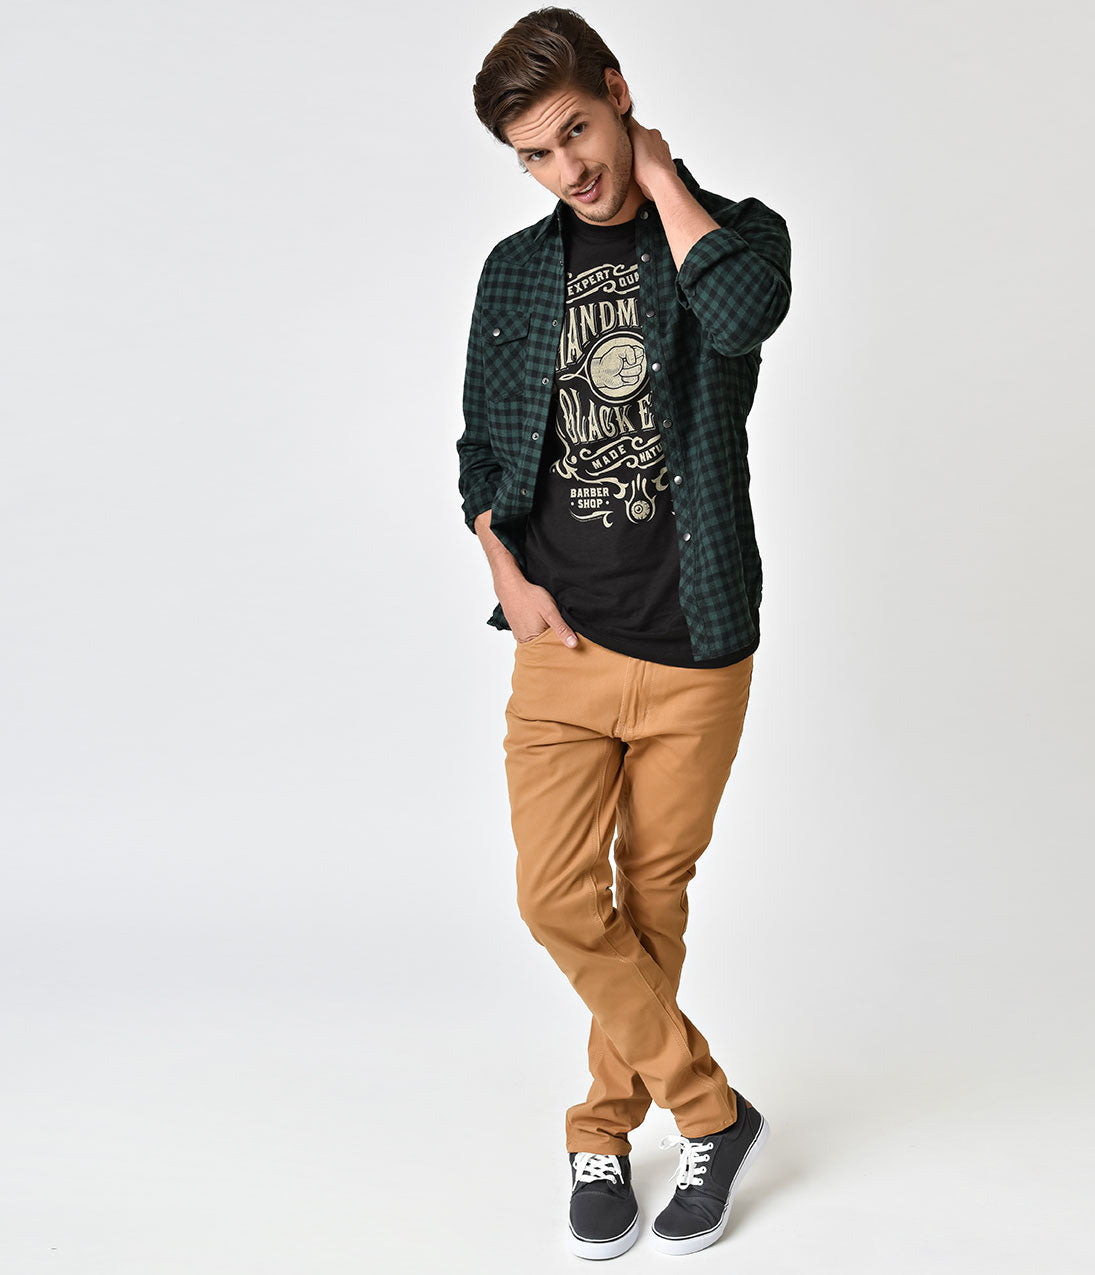 Timber Khaki Cotton Mens Pants Fabulous, retro inspired slim fitted jeans! Crafted in soft timber khaki cotton, these mens skinnies fit though out, complete with a cigarette style leg. A button fly, small zipper, pockets, and belt loops top off the look- a perfect pair of pants if we ever saw one, darlings. Available in sizes 30-38 while supplies last